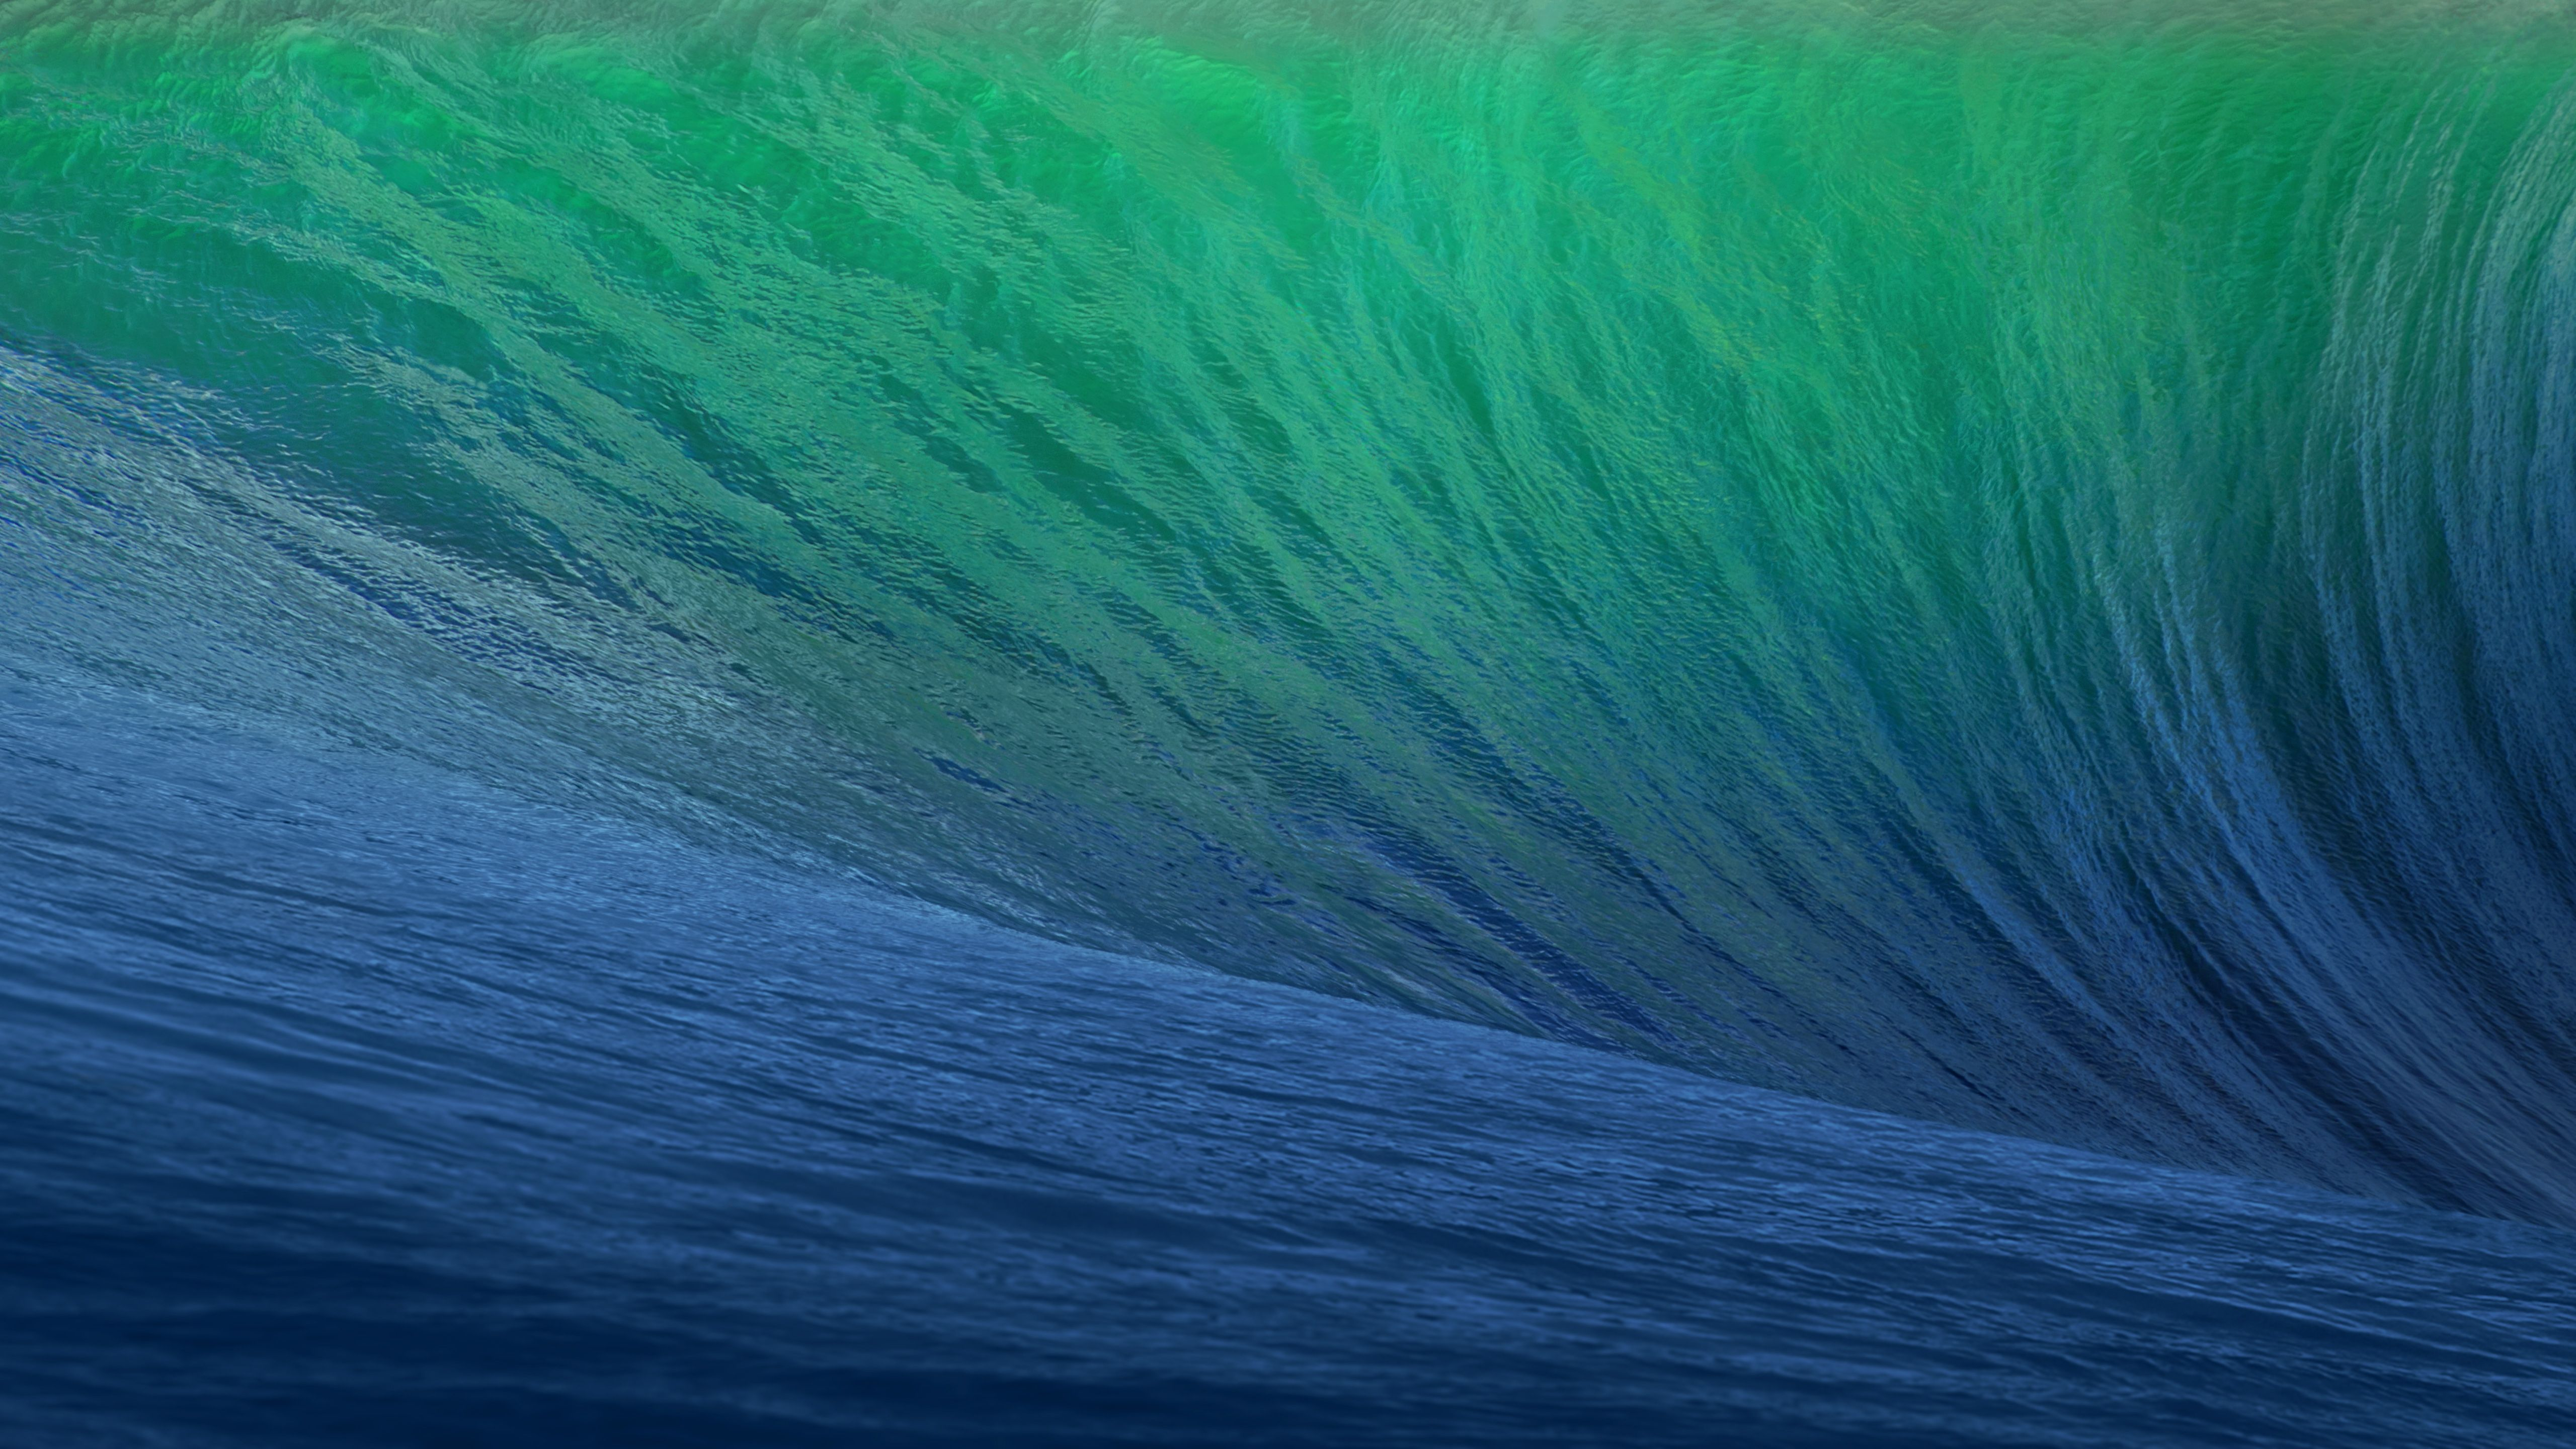 mac os x mavericks retina background wallpaper if youre looking for the non